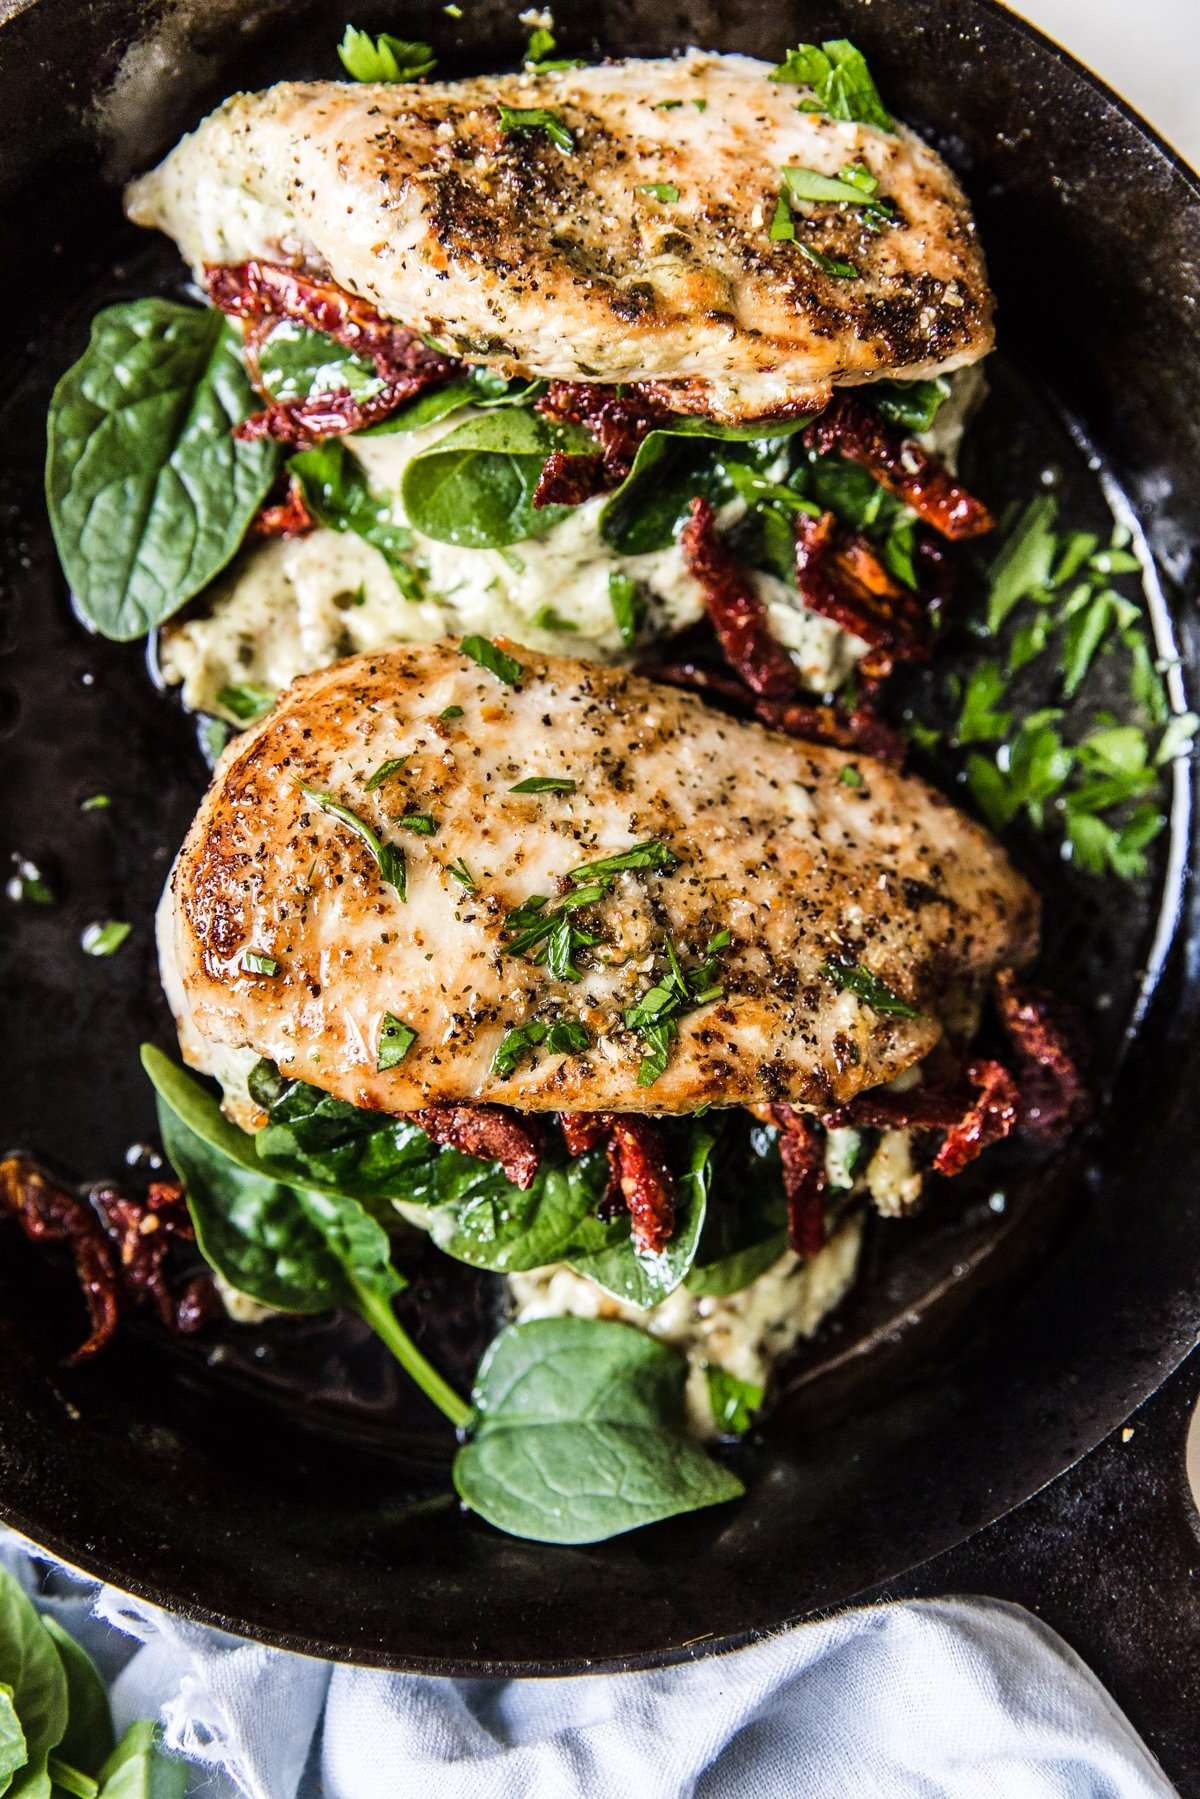 Stuffed Chicken Breast with Spinach, Cheese and Sun-DriedTomatoes